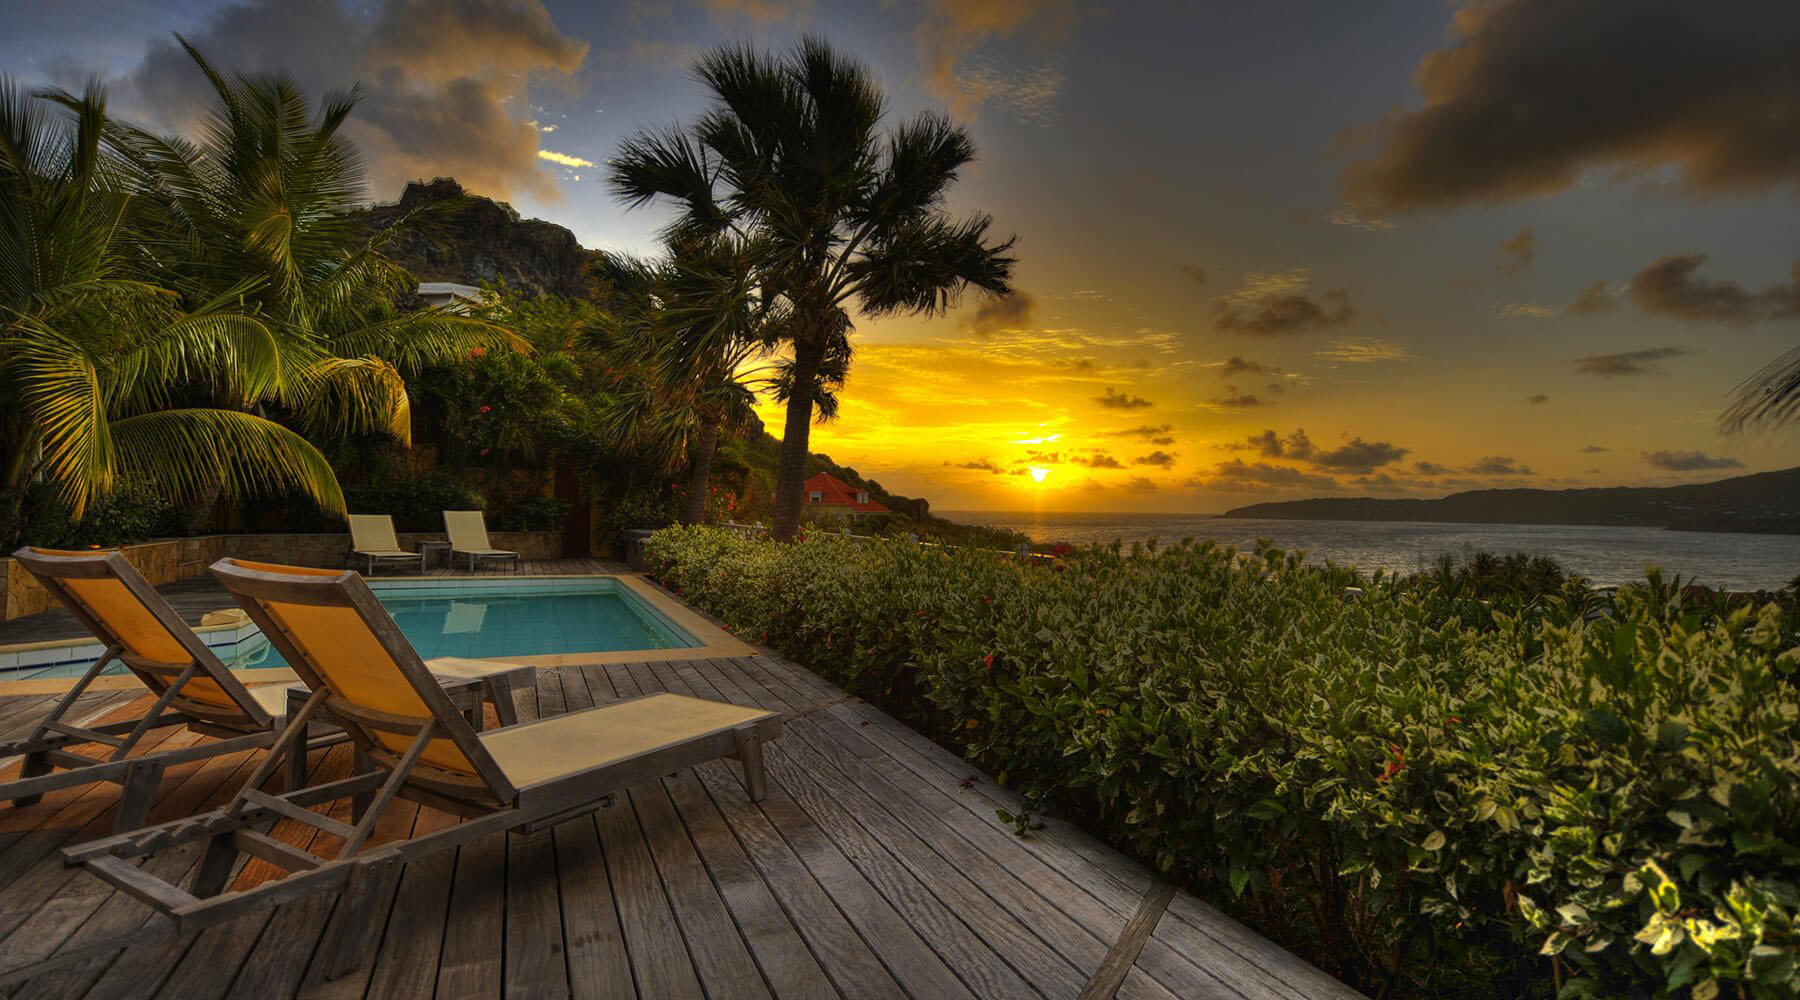 8 NIGHT CARIBBEAN SUNSETS VOYAGE